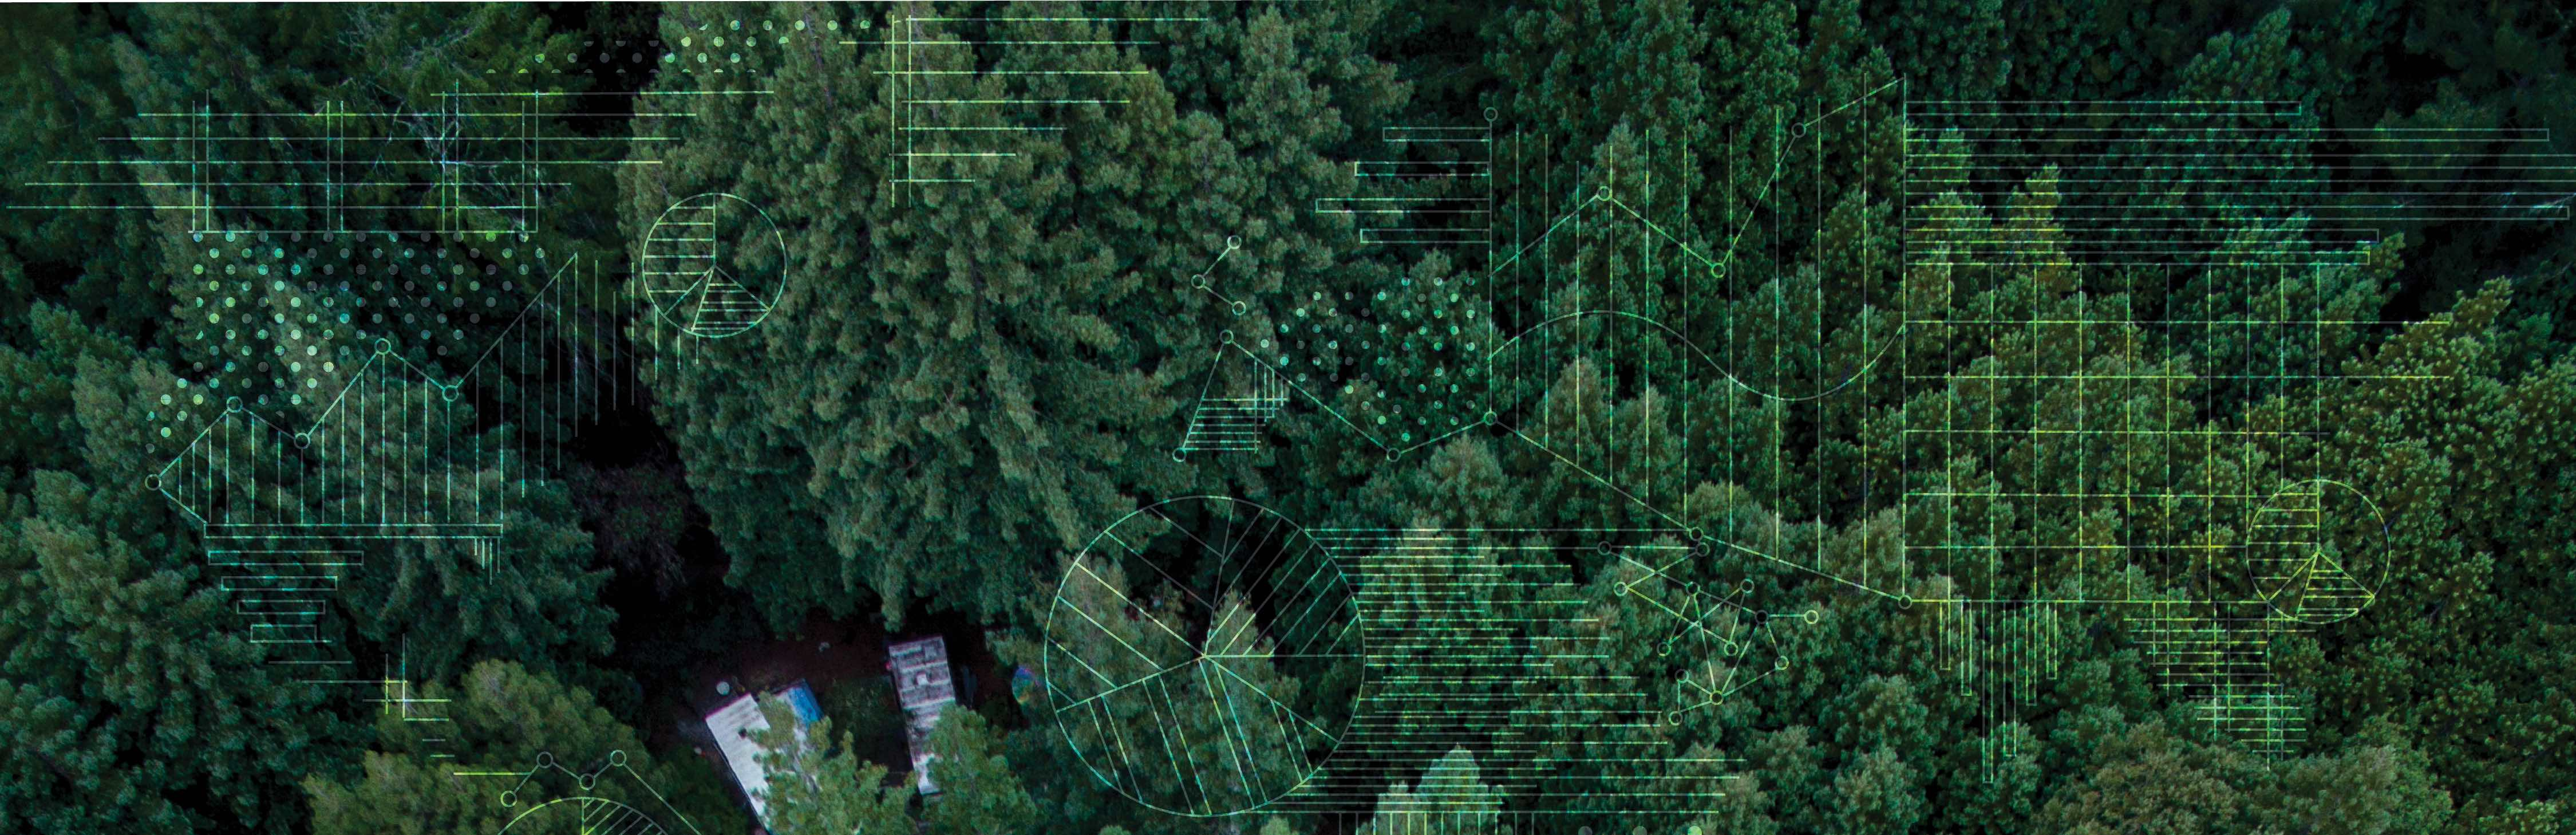 Aerial shot of trees with an overlay of data points in the shape of countries